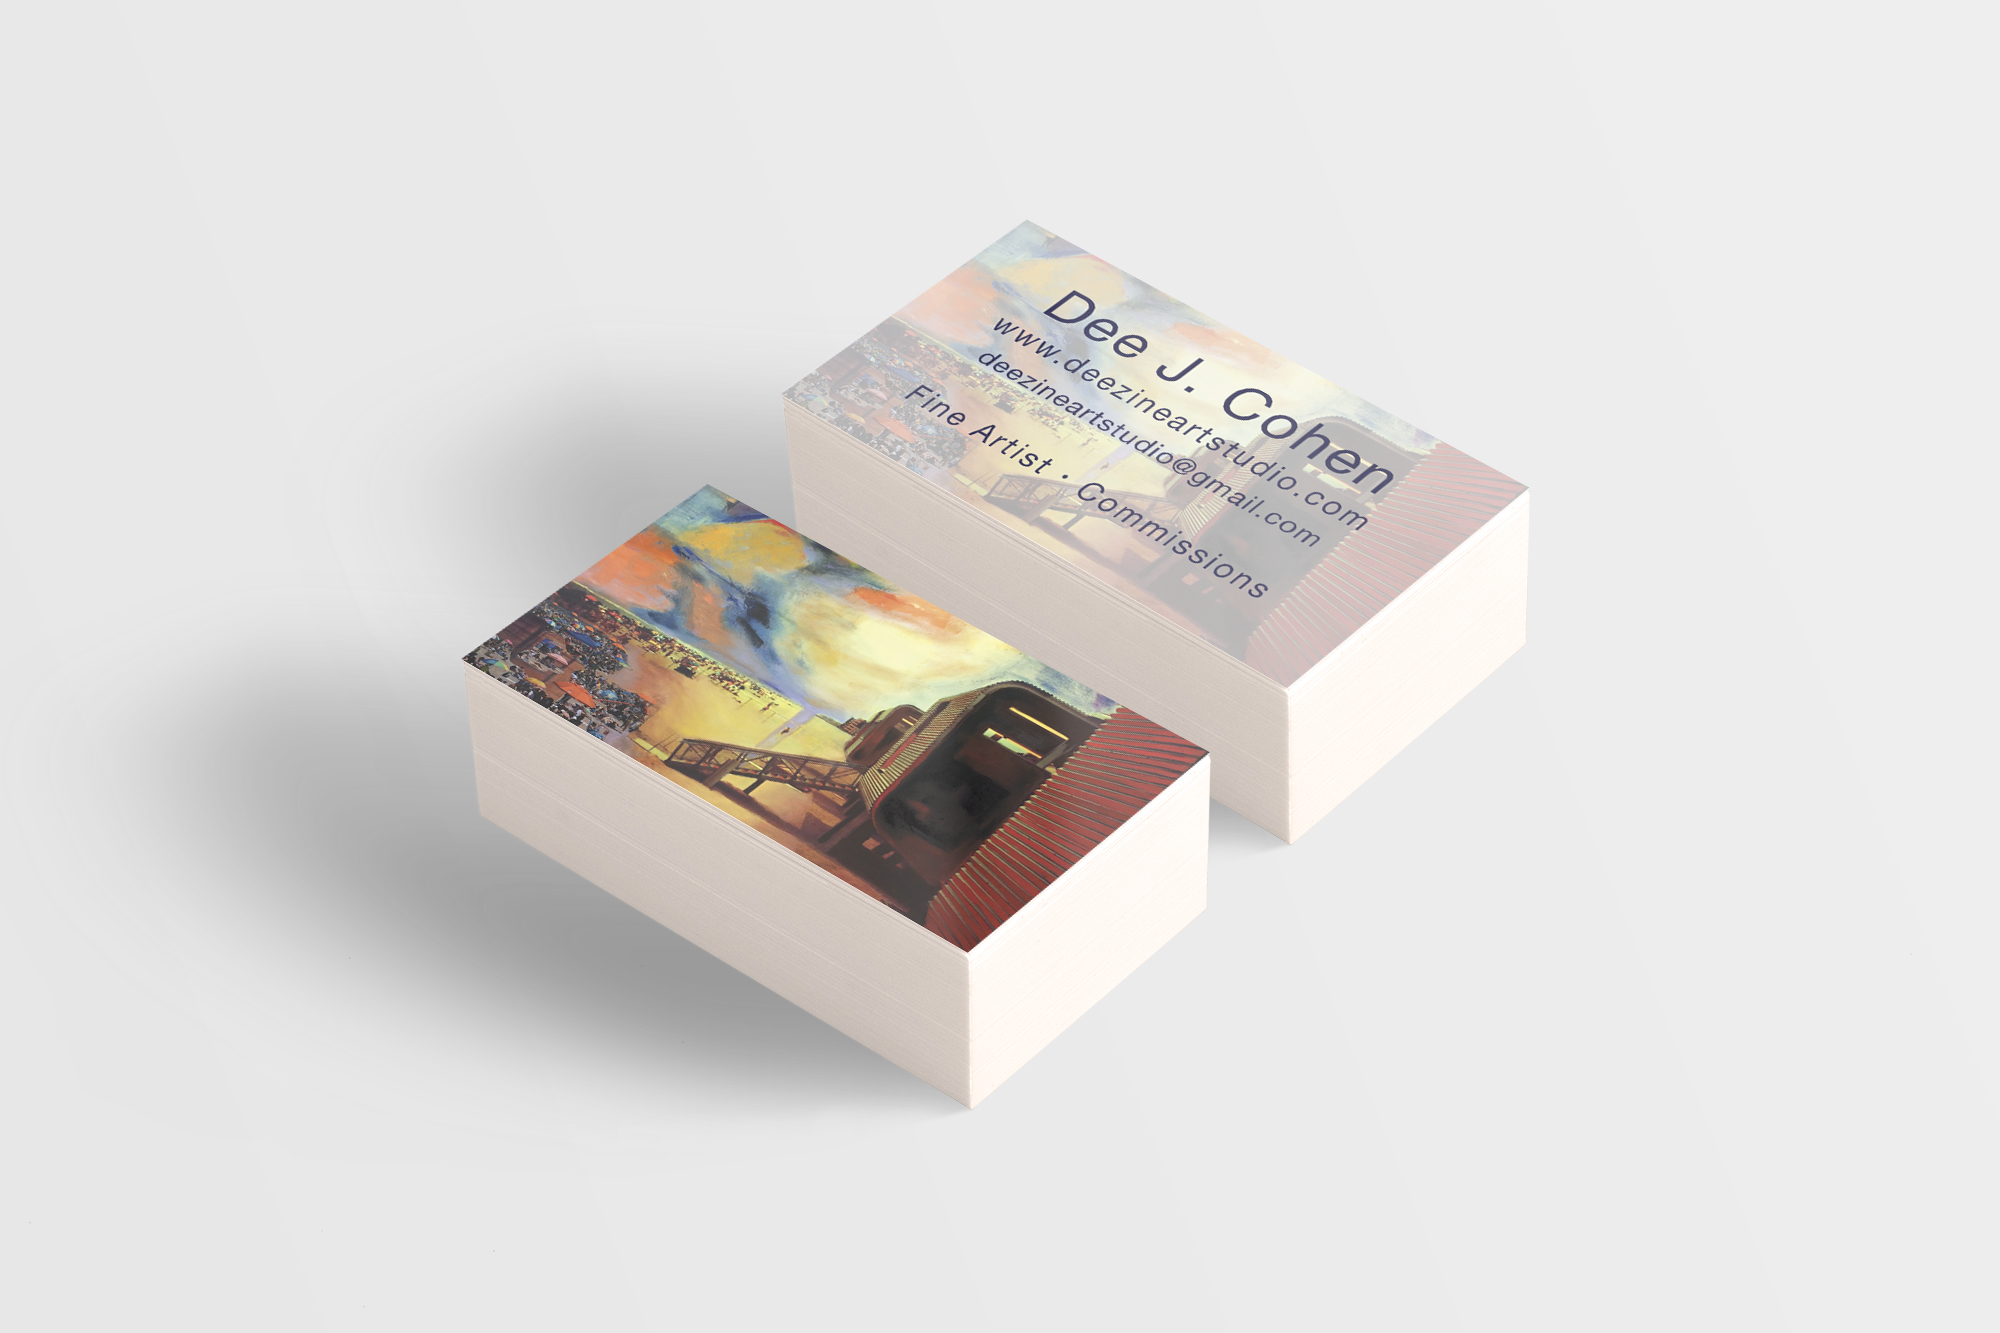 GeenaMatuson_BusinessCard_DeeCohen_BeachScene01_2016.jpg